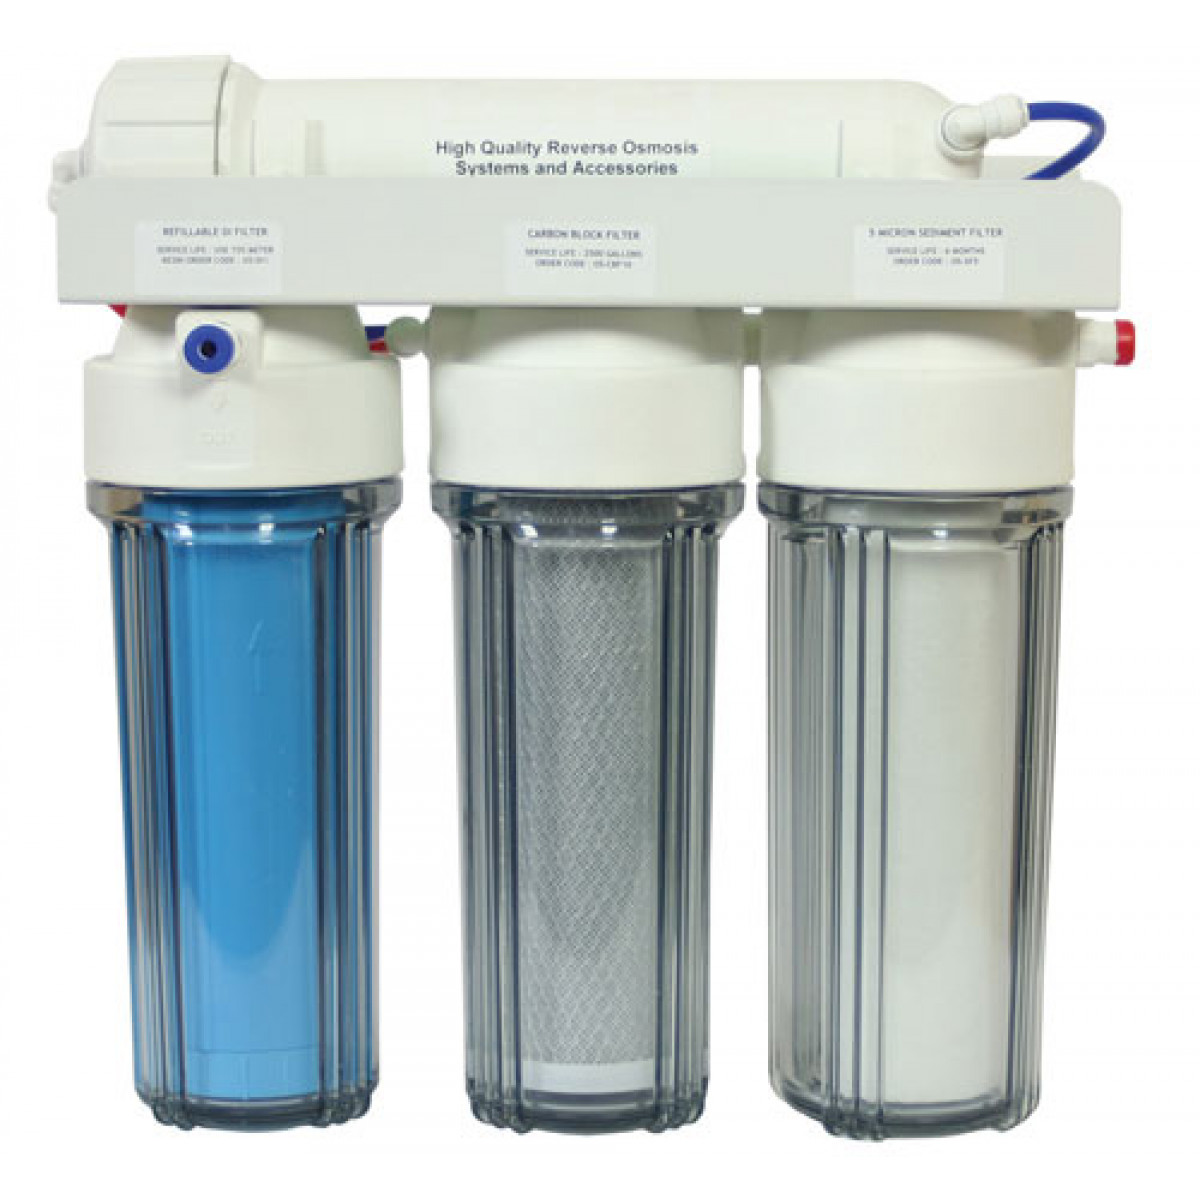 Water filter system Simple Water Filtration System 75gdpus Stage Burtons Veterinary Equipment Water Filtration System 75gdpus Stage Burtons Medical Equipment